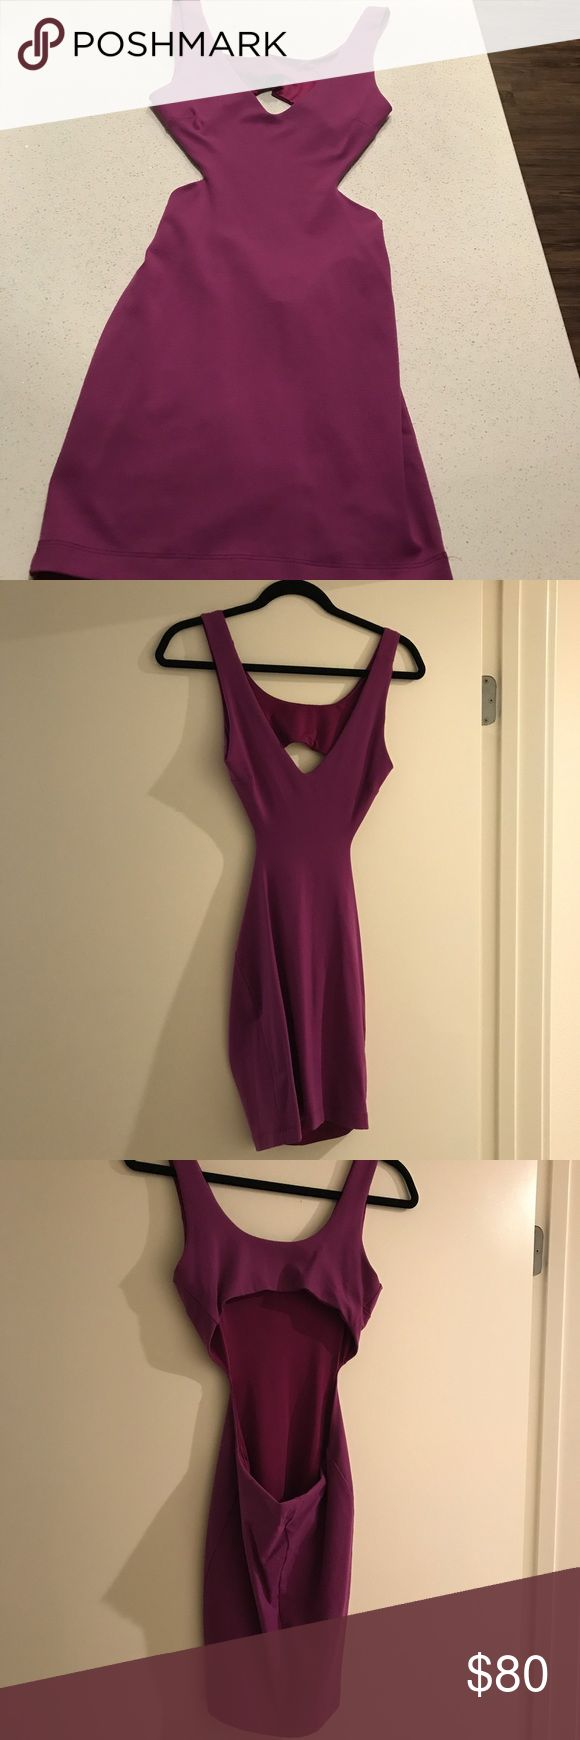 Bebe Purple Bodycon Dress -Bebe -Beautiful lilac purple dress -Tight fit -Low V-neck in the front and side cut-outs  -Sexy circle cut-out in the back  -Great for a date night, girls night out, birthday, dinner, dance, etc! -Very stretchy -Flattering style   -Size XS -Made in the USA bebe Dresses Mini